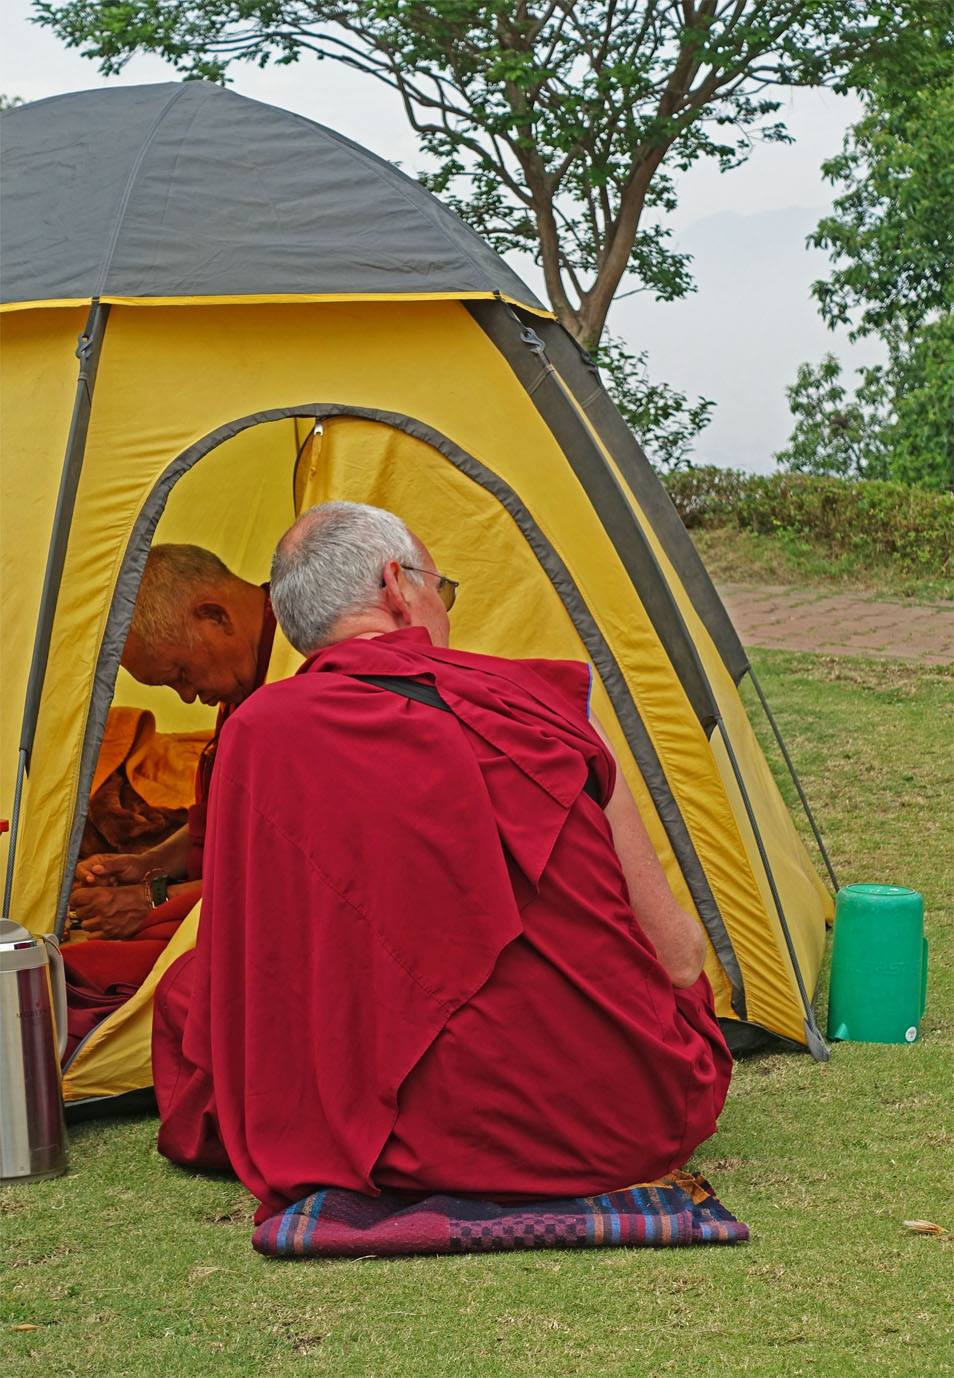 FPMT Spiritual Director Lama Zopa Rinpoche and CEO Ven. Roger Kunsang, where they camped days after the first earthquake, Kopan Monastery, April 2015